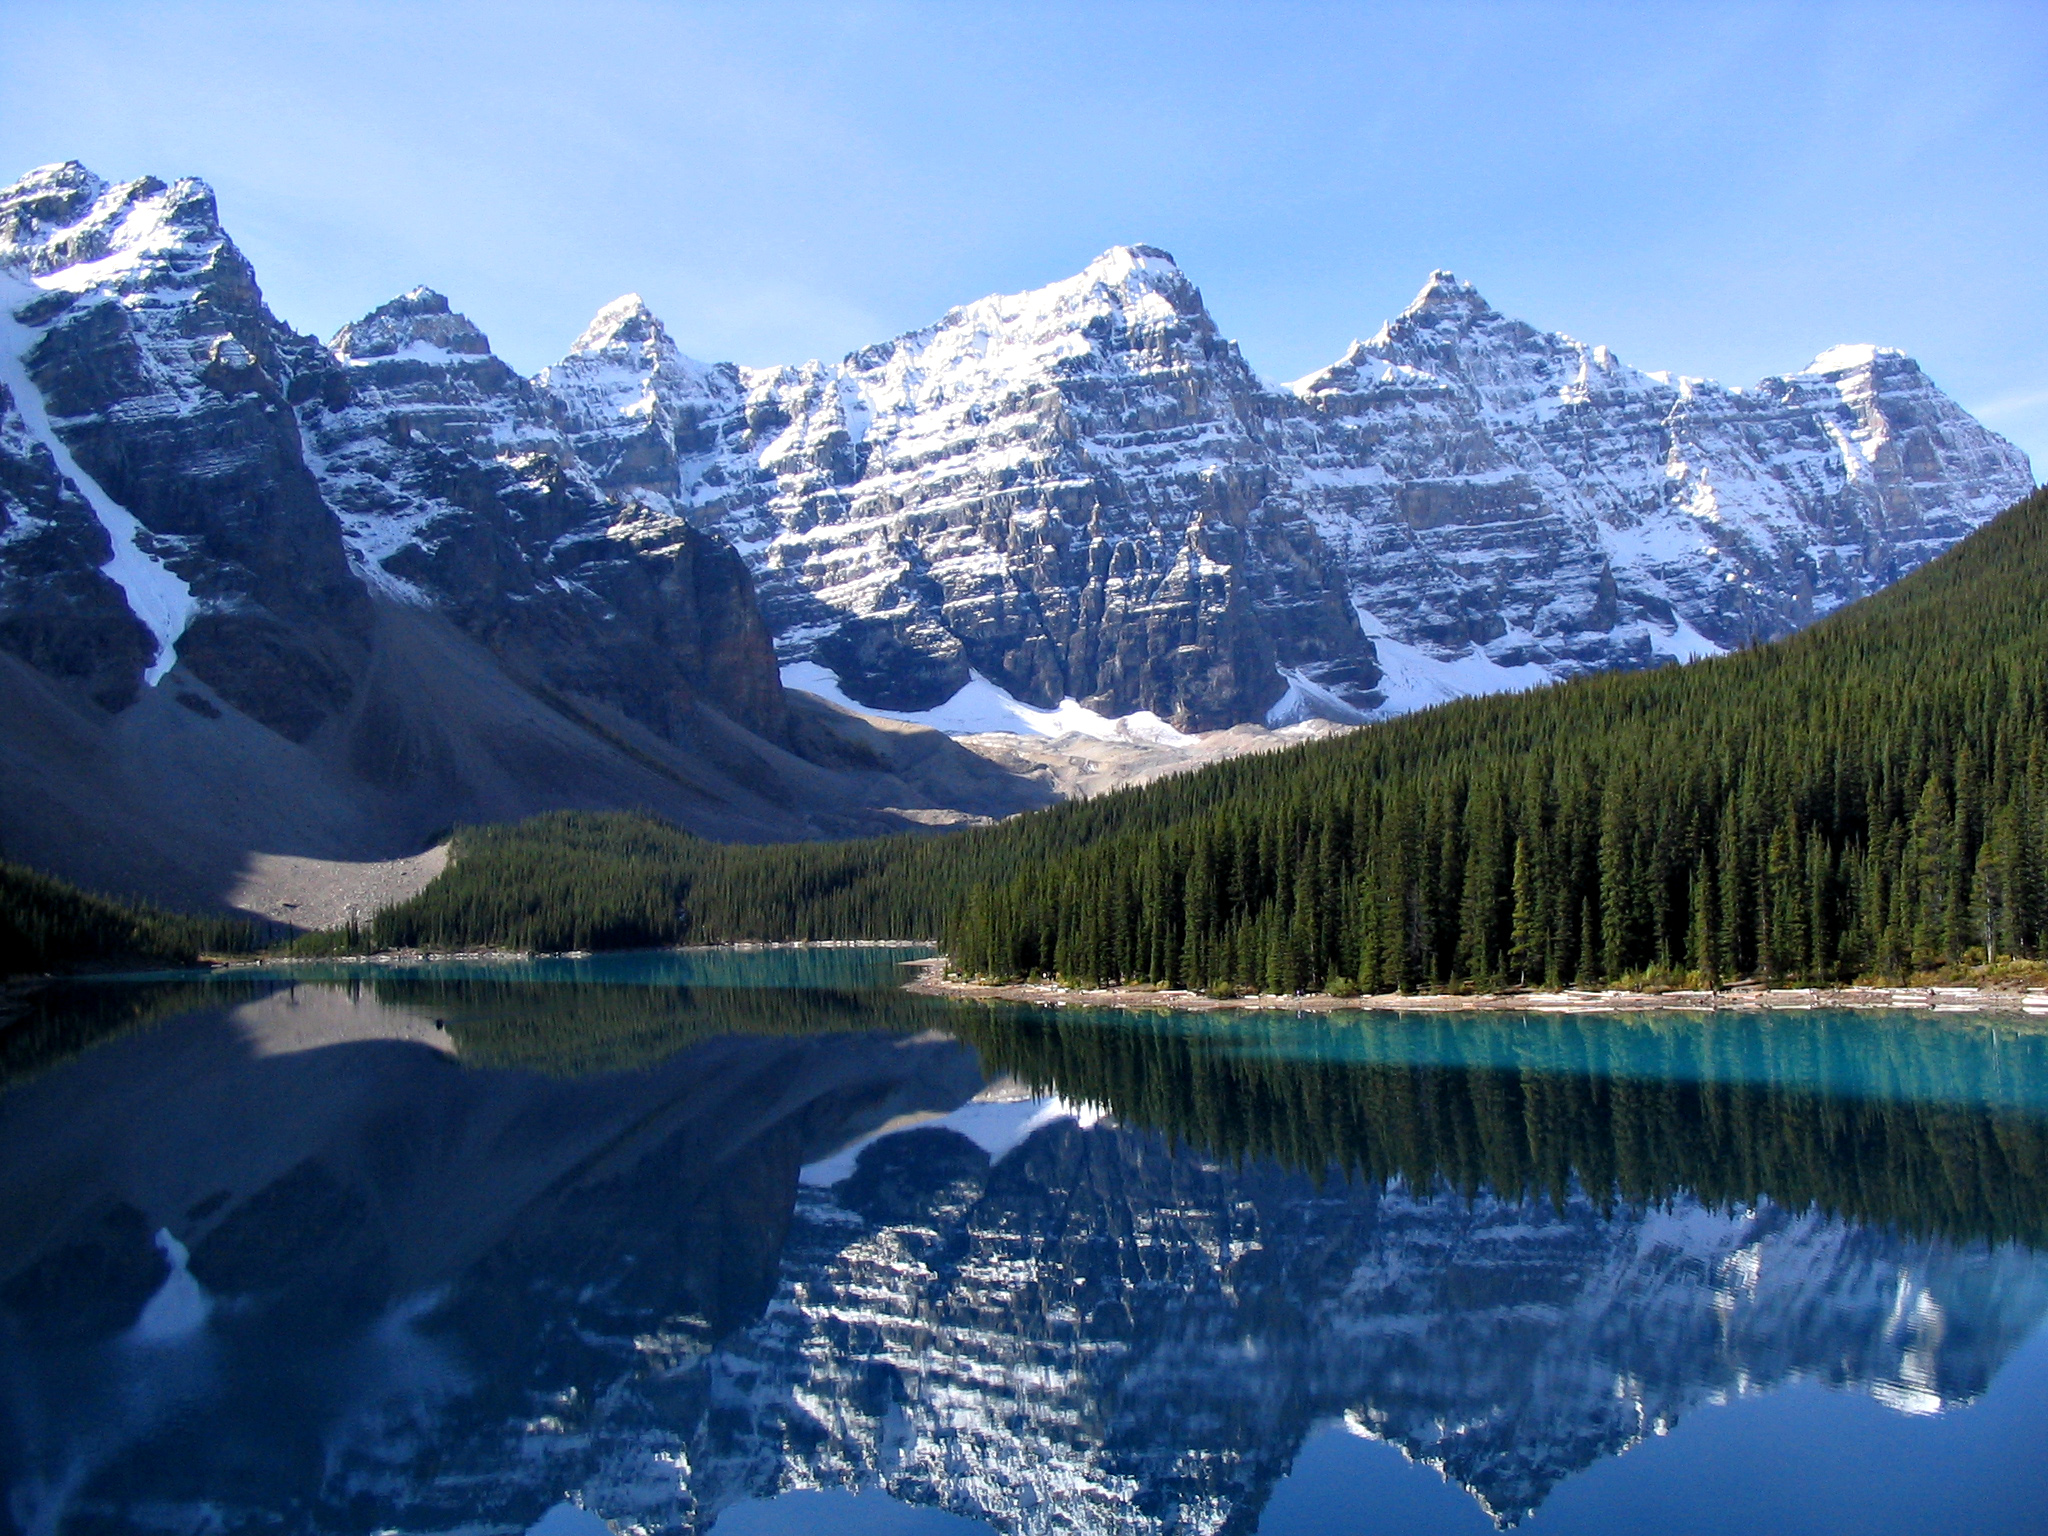 A view of Moraine Lake and the Valley of the Ten Peaks in Banff National Park. The smooth blue water of a lake is seen in the foreground, while snow-capped mountain peaks are visible in the distance.